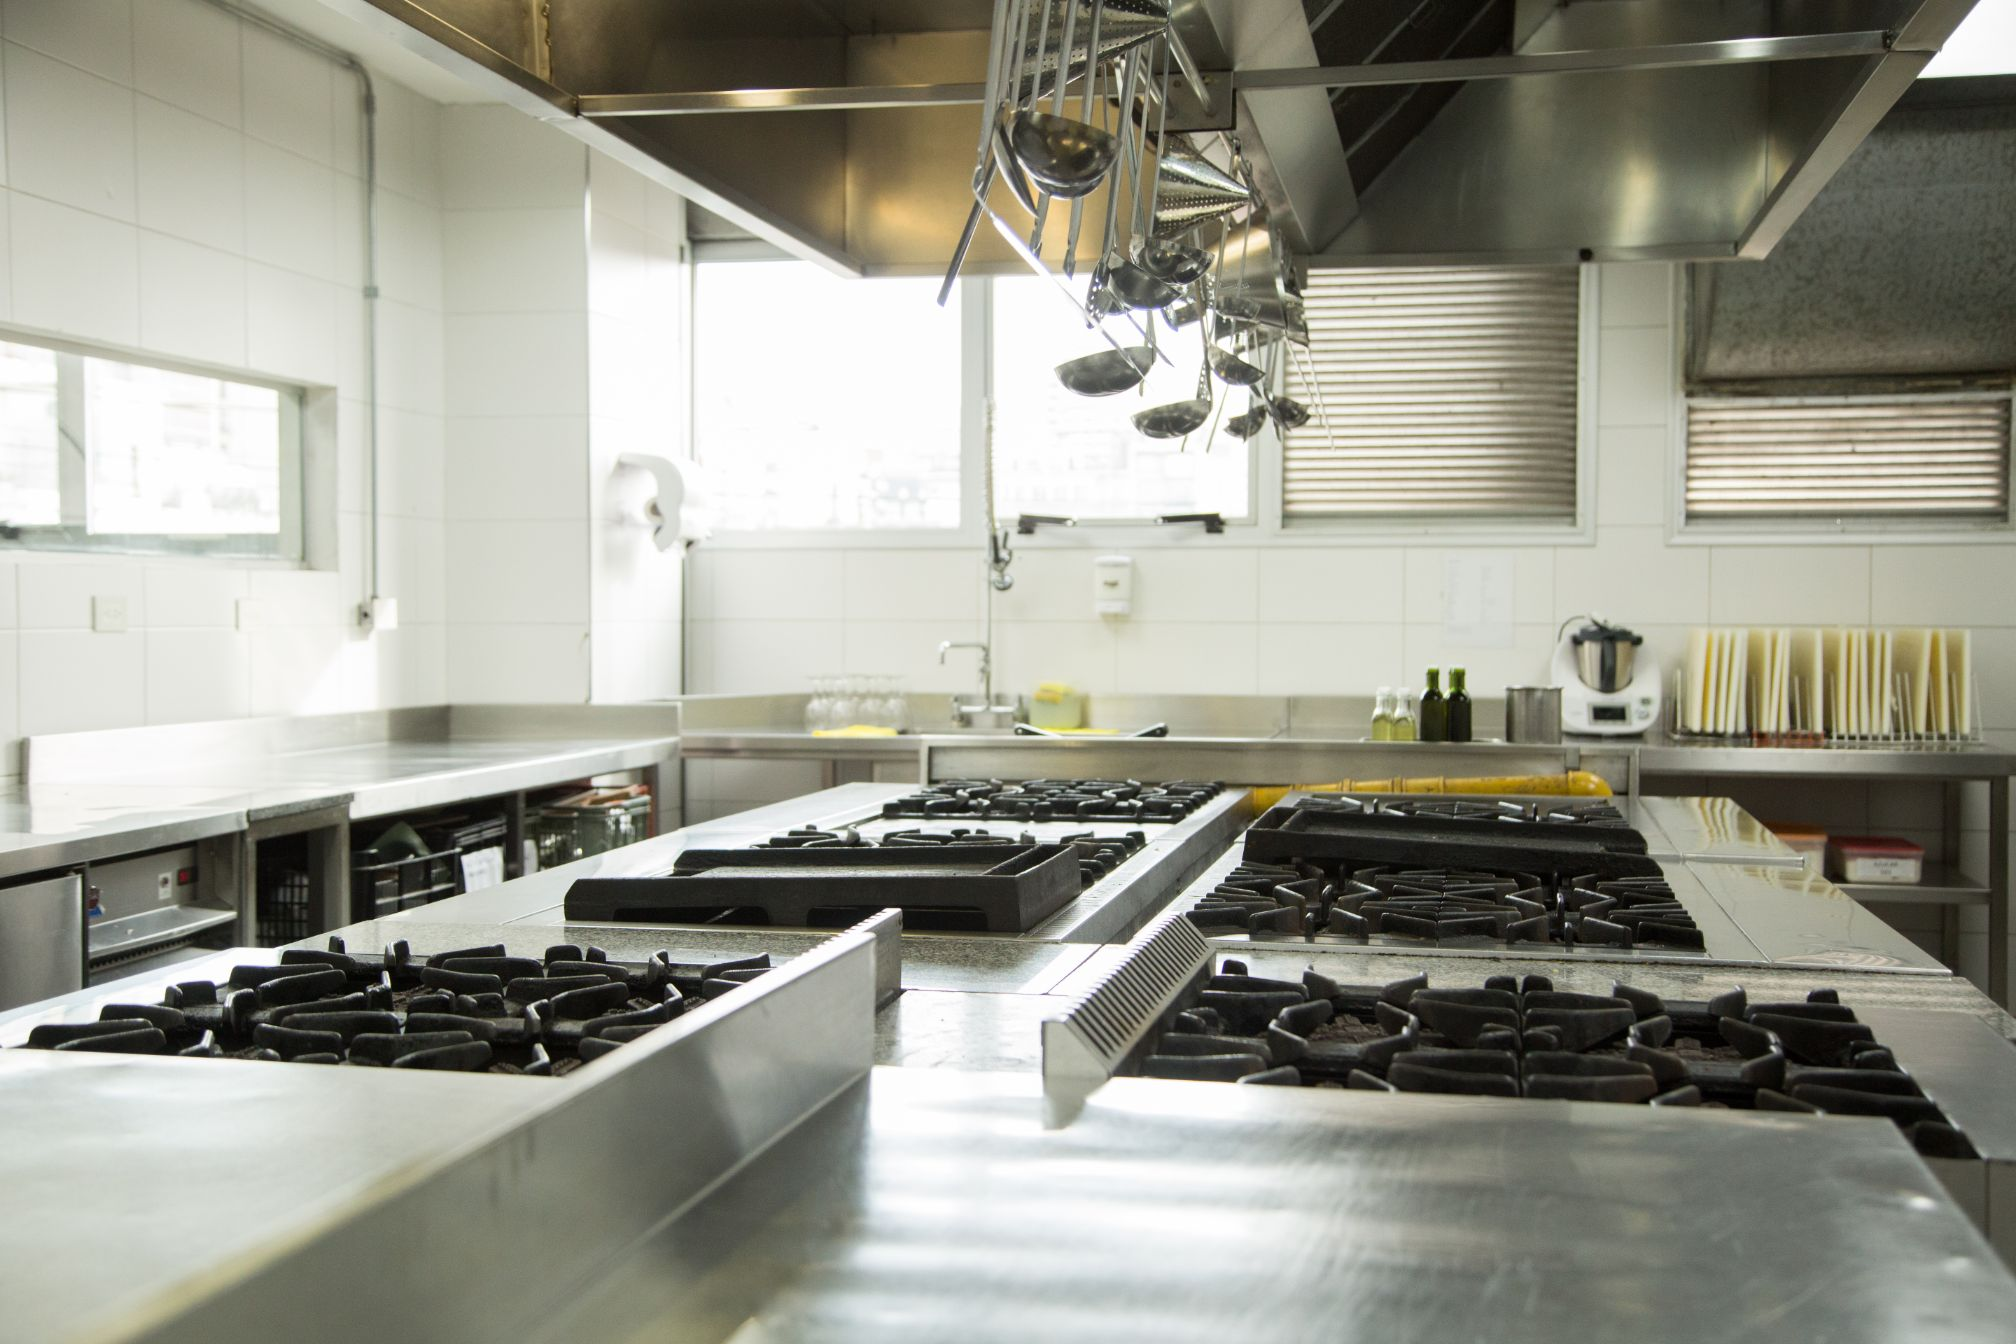 How Much Does It Cost To Renovate Your Restaurant Kitchen